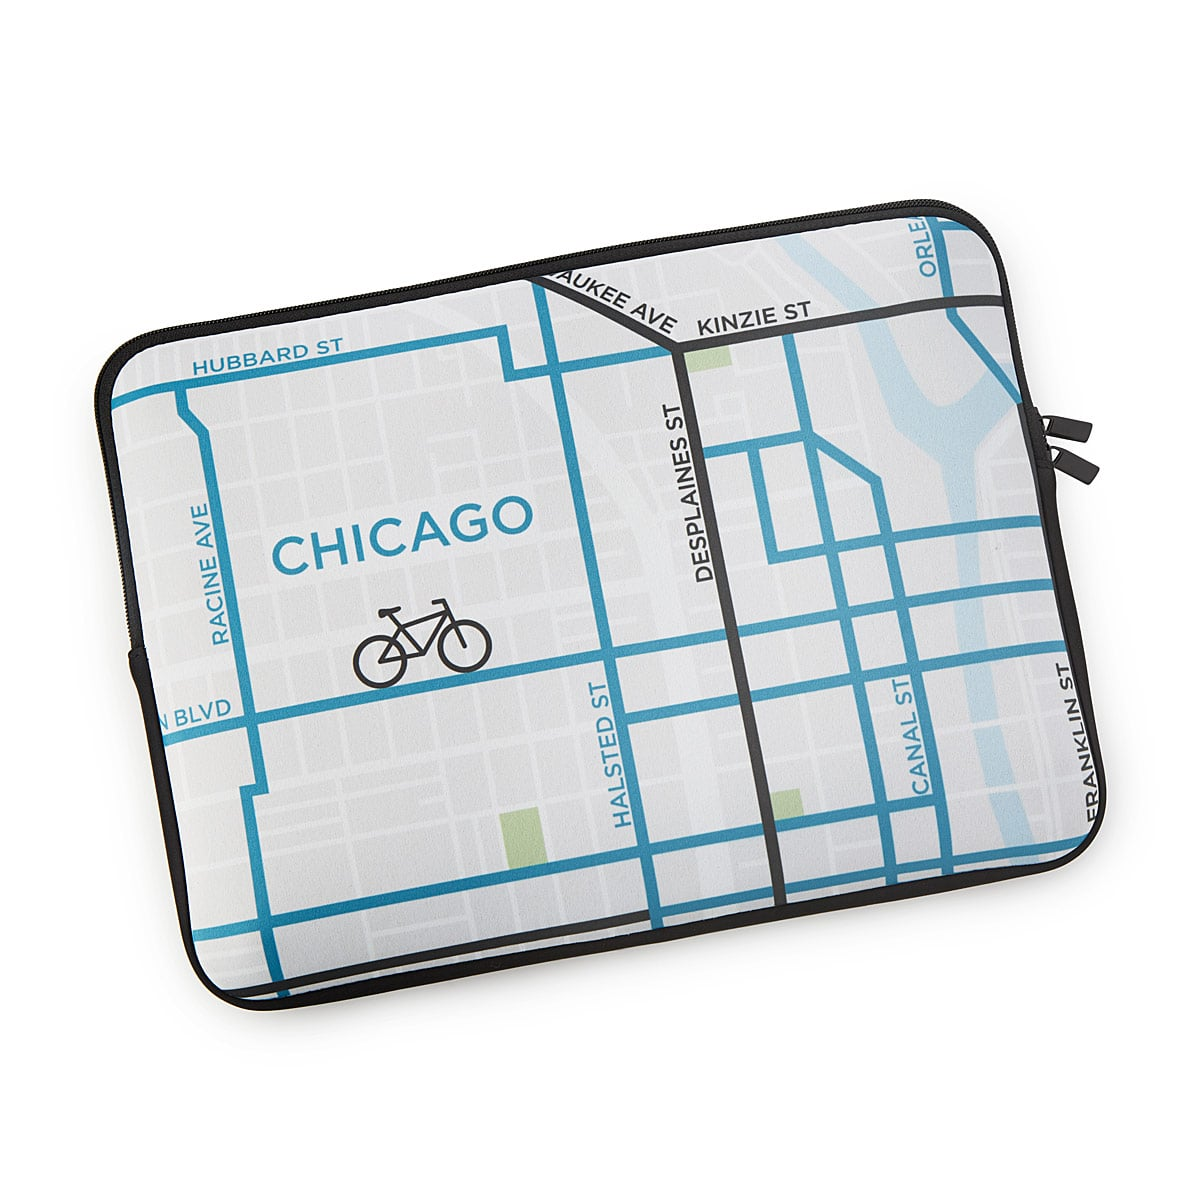 City Bike Map Laptop Case | 31 Affordable Gifts Your Dad ... Citybike Map on hubway map, nyc train map, bronx zip code map, proof of success map, nyc school district map, nyc bus map,